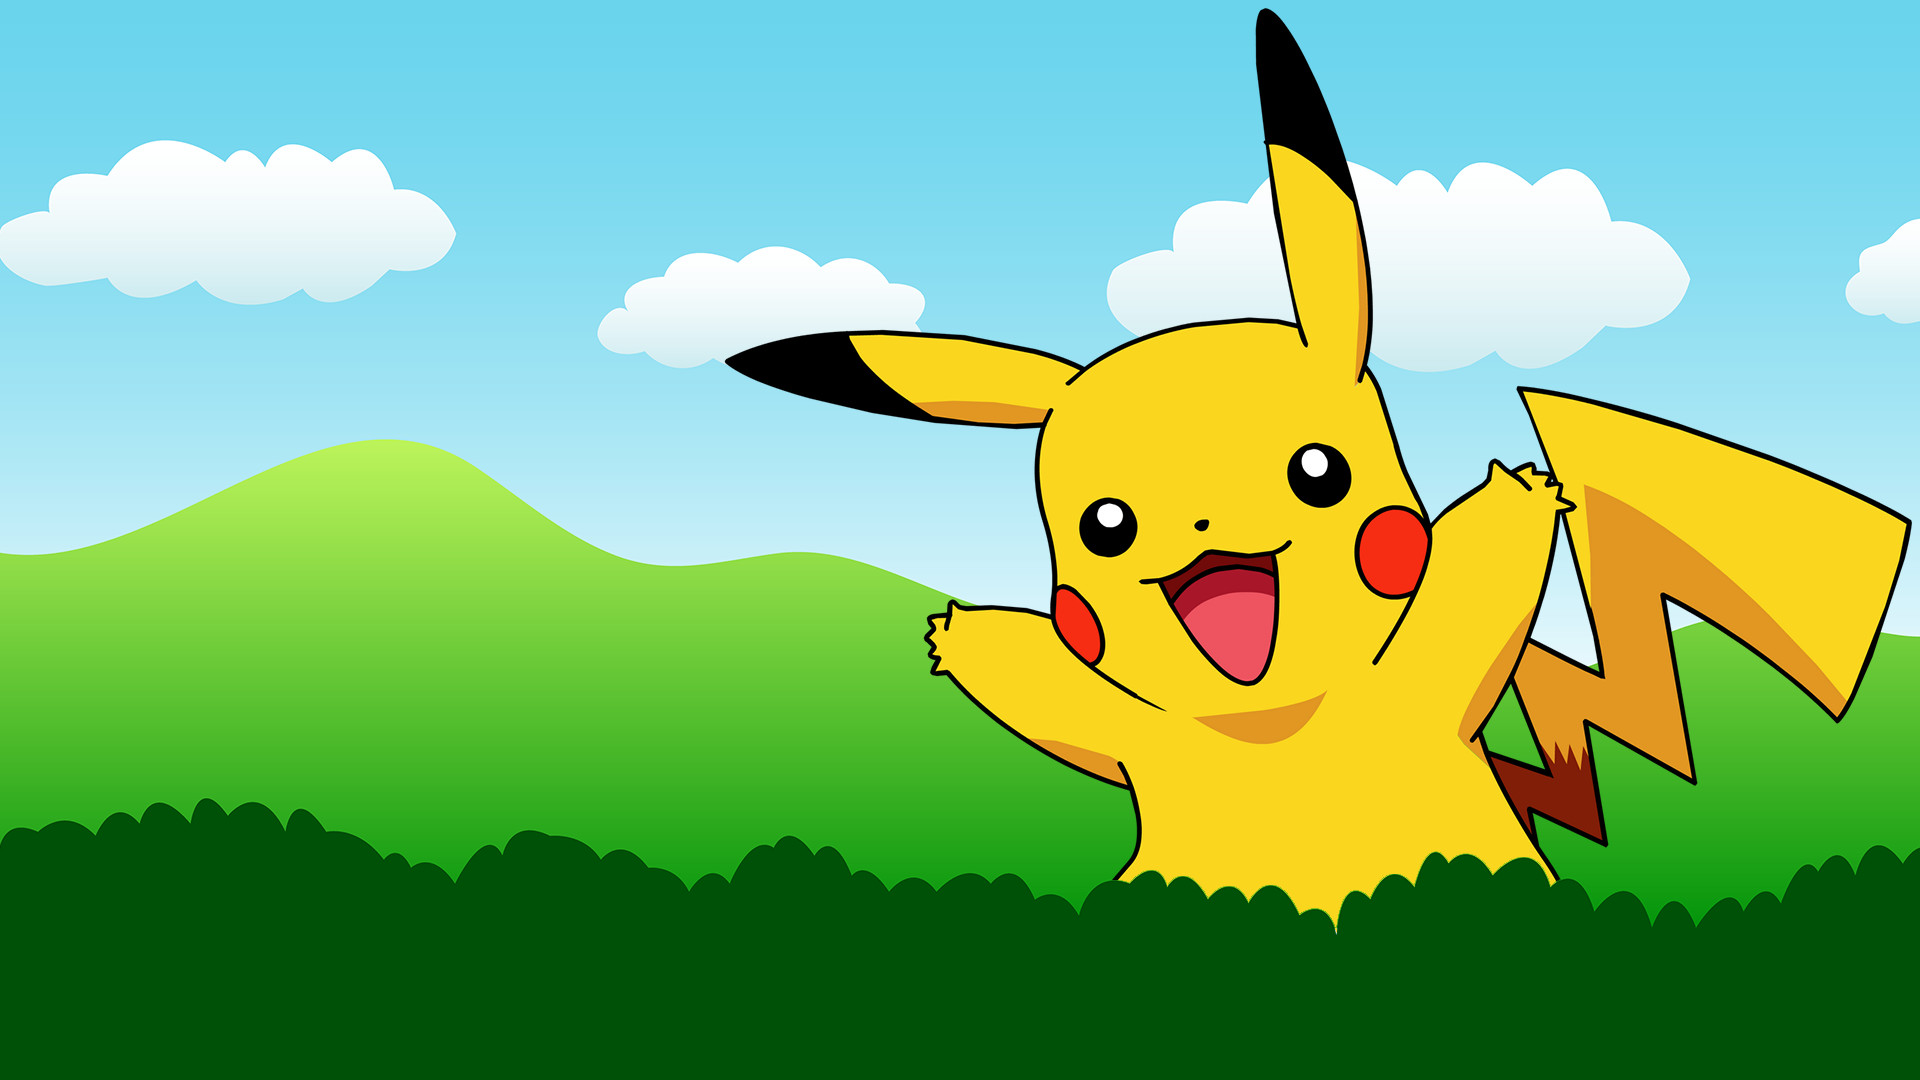 Cute Pikachu Wallpapers (79+ images)